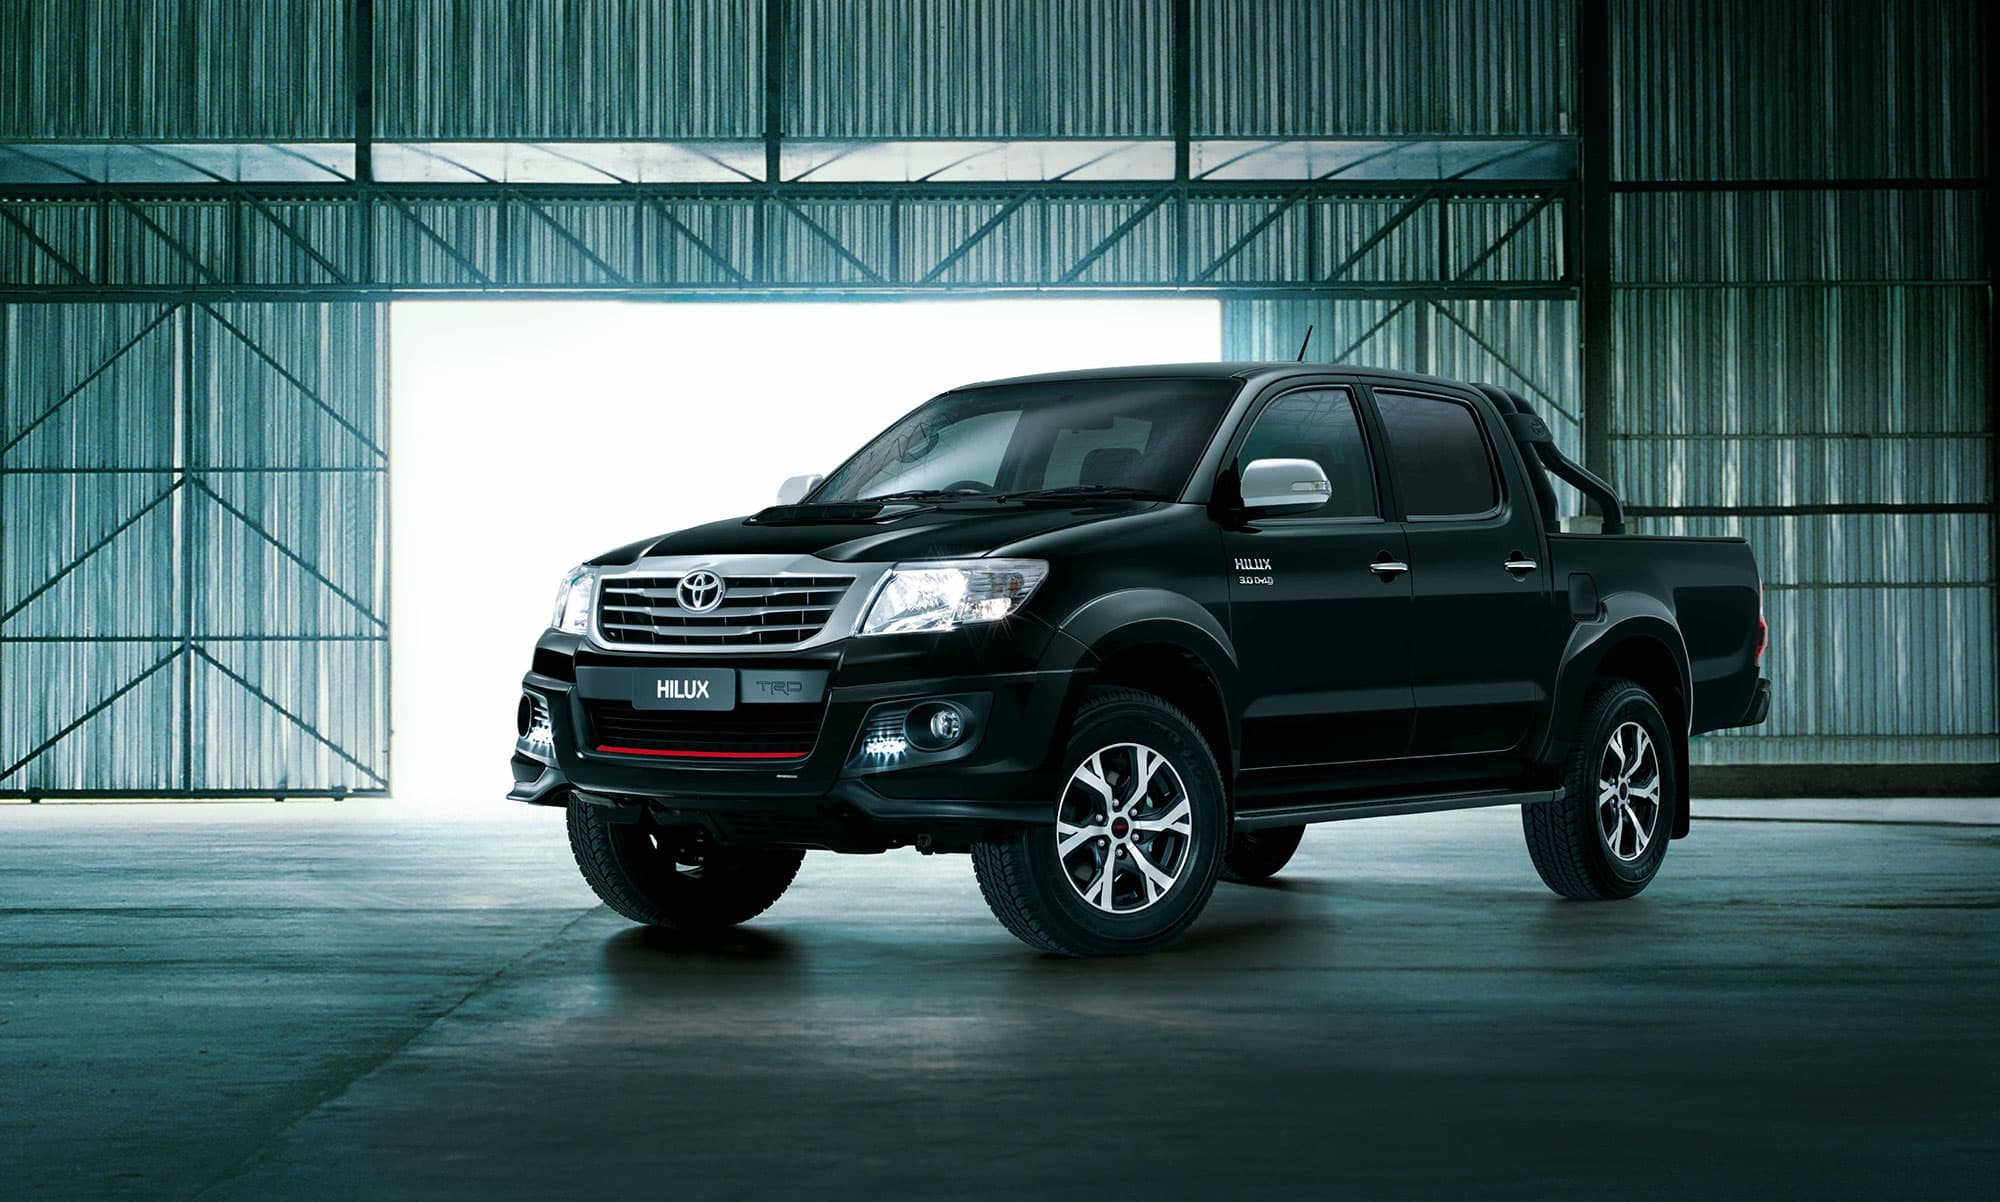 Toyota Hilux 2016 wallpapers HD High Quality Download